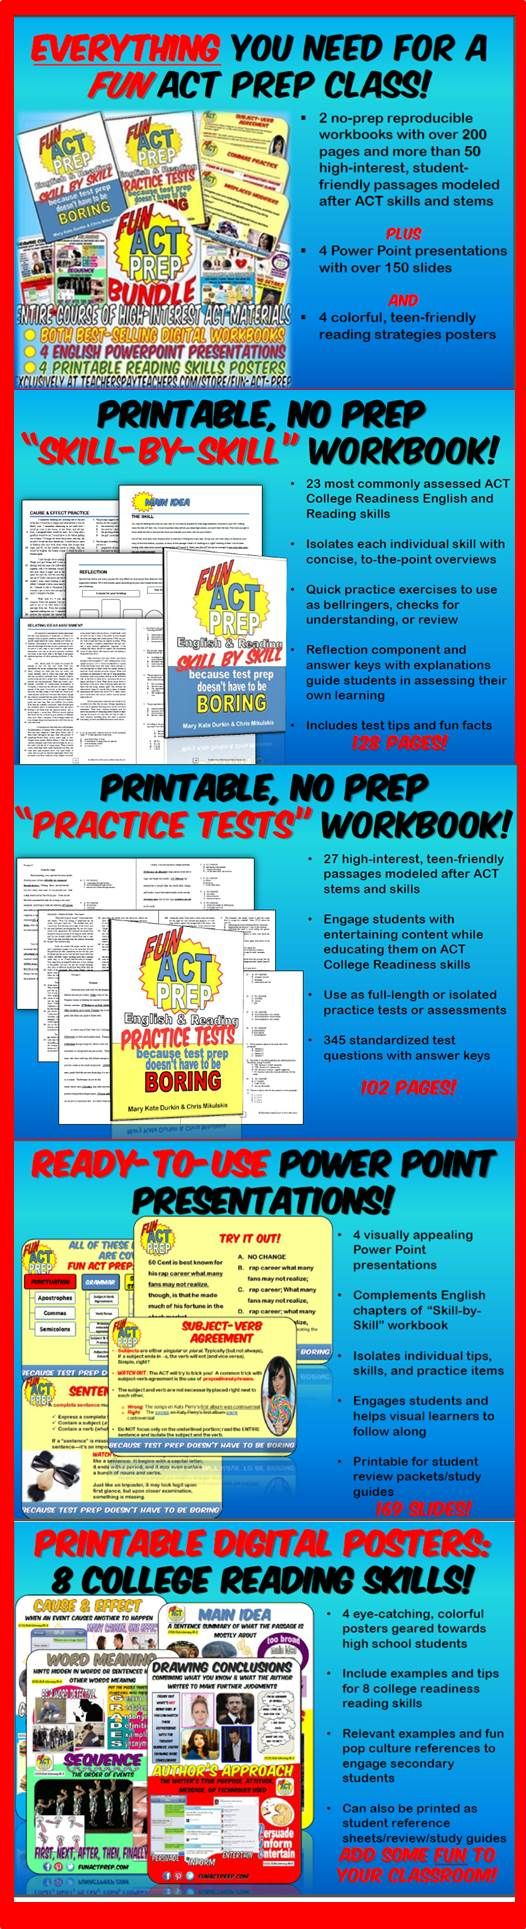 EVERYTHING you need for an ACT prep class that's FUN! Over 200 pages plus presentations and posters!